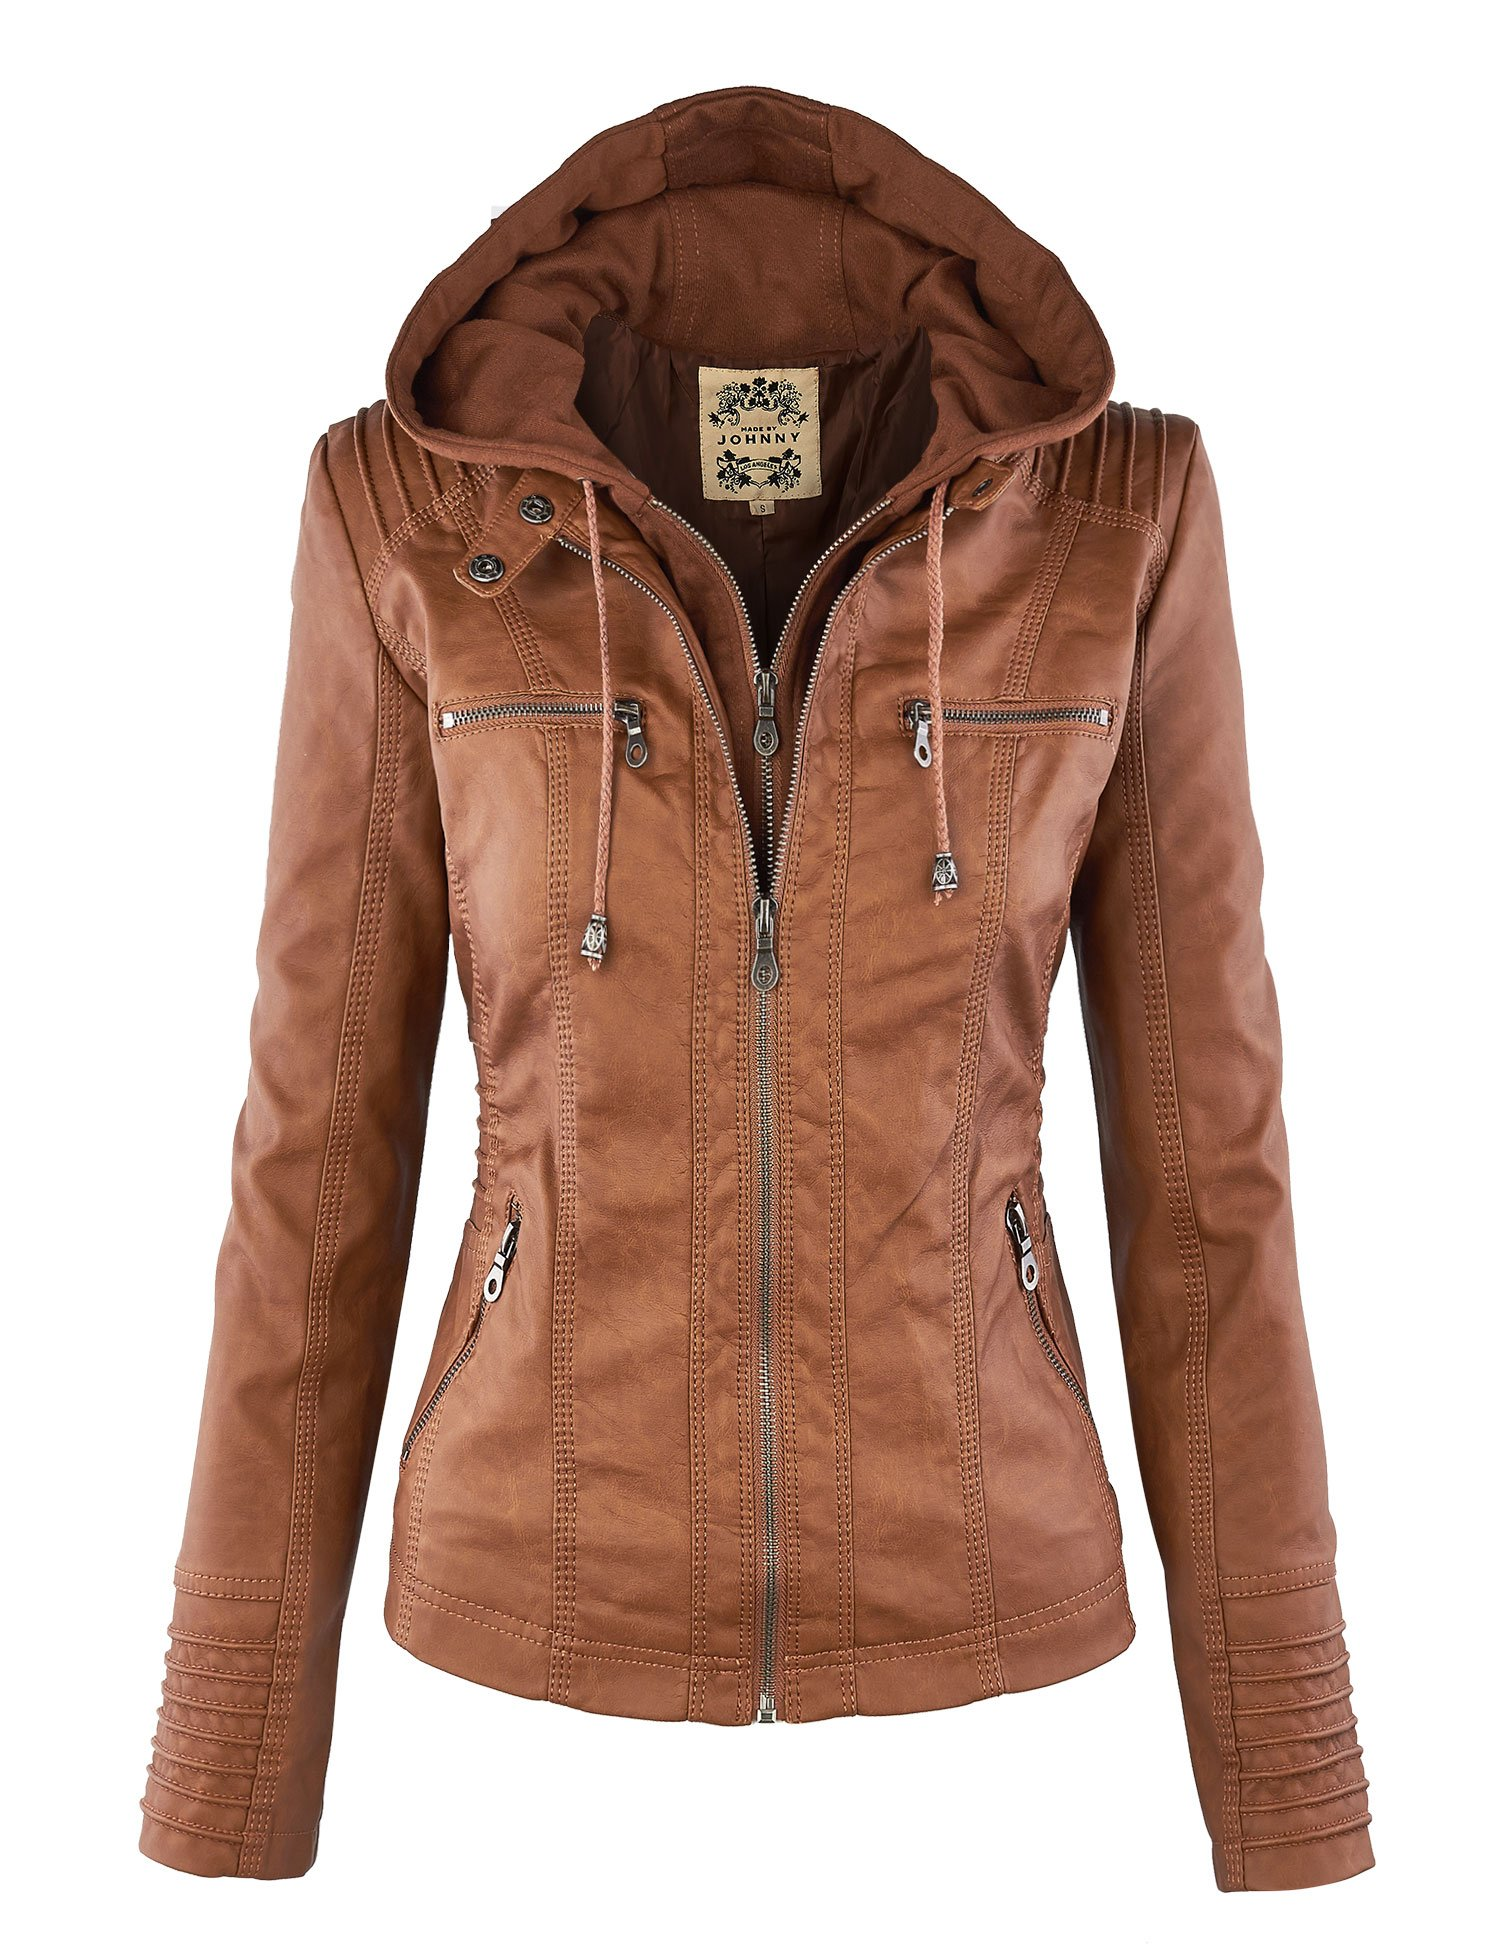 WJC663 Womens Removable Hoodie Motorcyle Jacket XL Camel